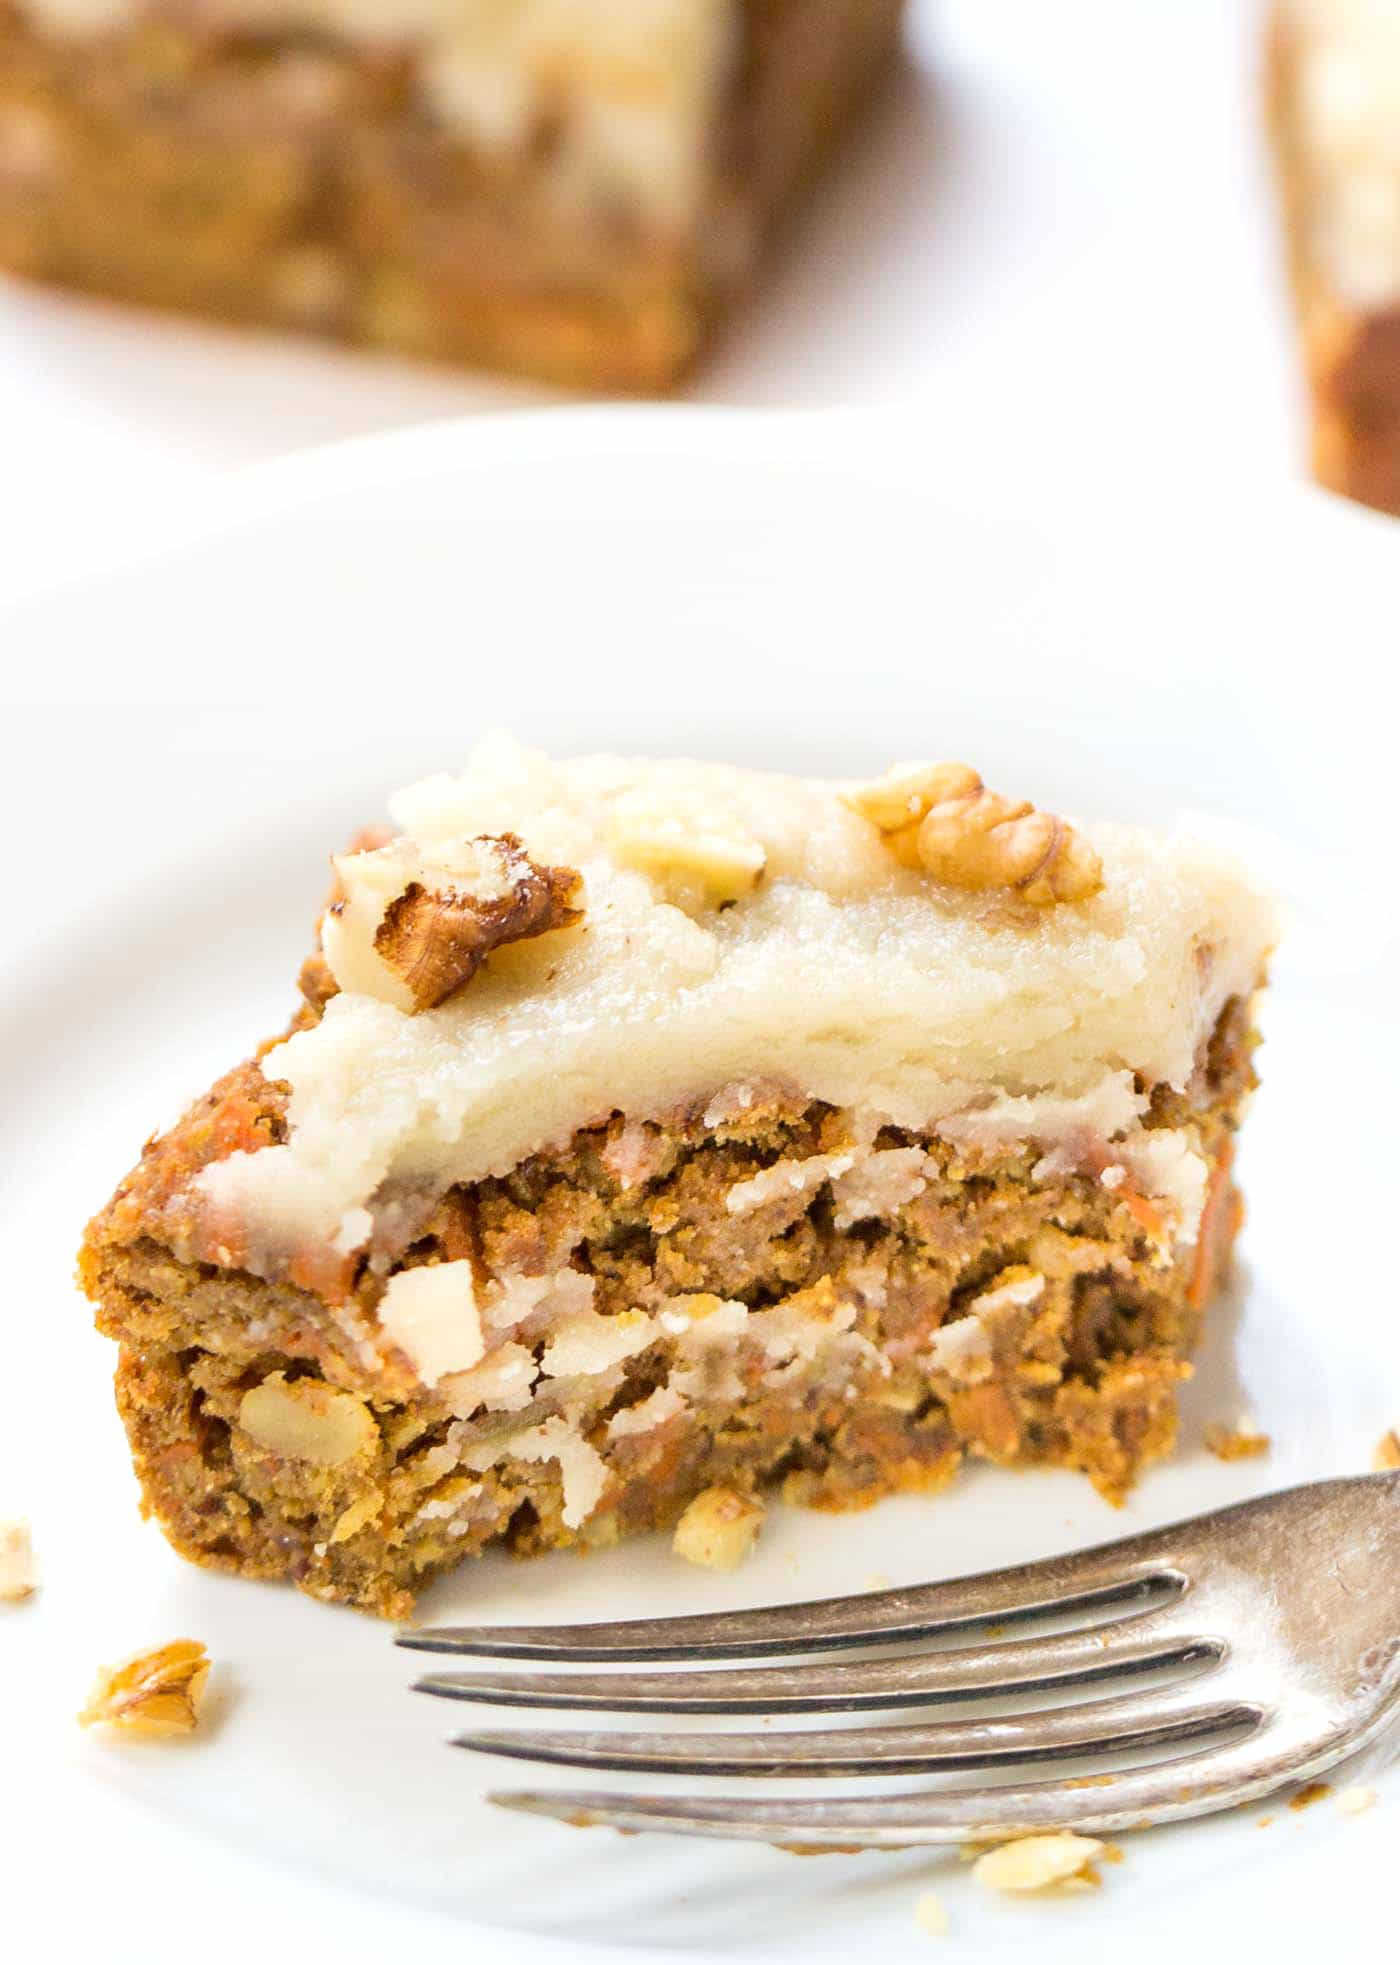 An absolutely EPIC vegan carrot cake recipe that uses chickpeas and quinoa....AND it's healthy enough for breakfast! {vegan + gluten-free}